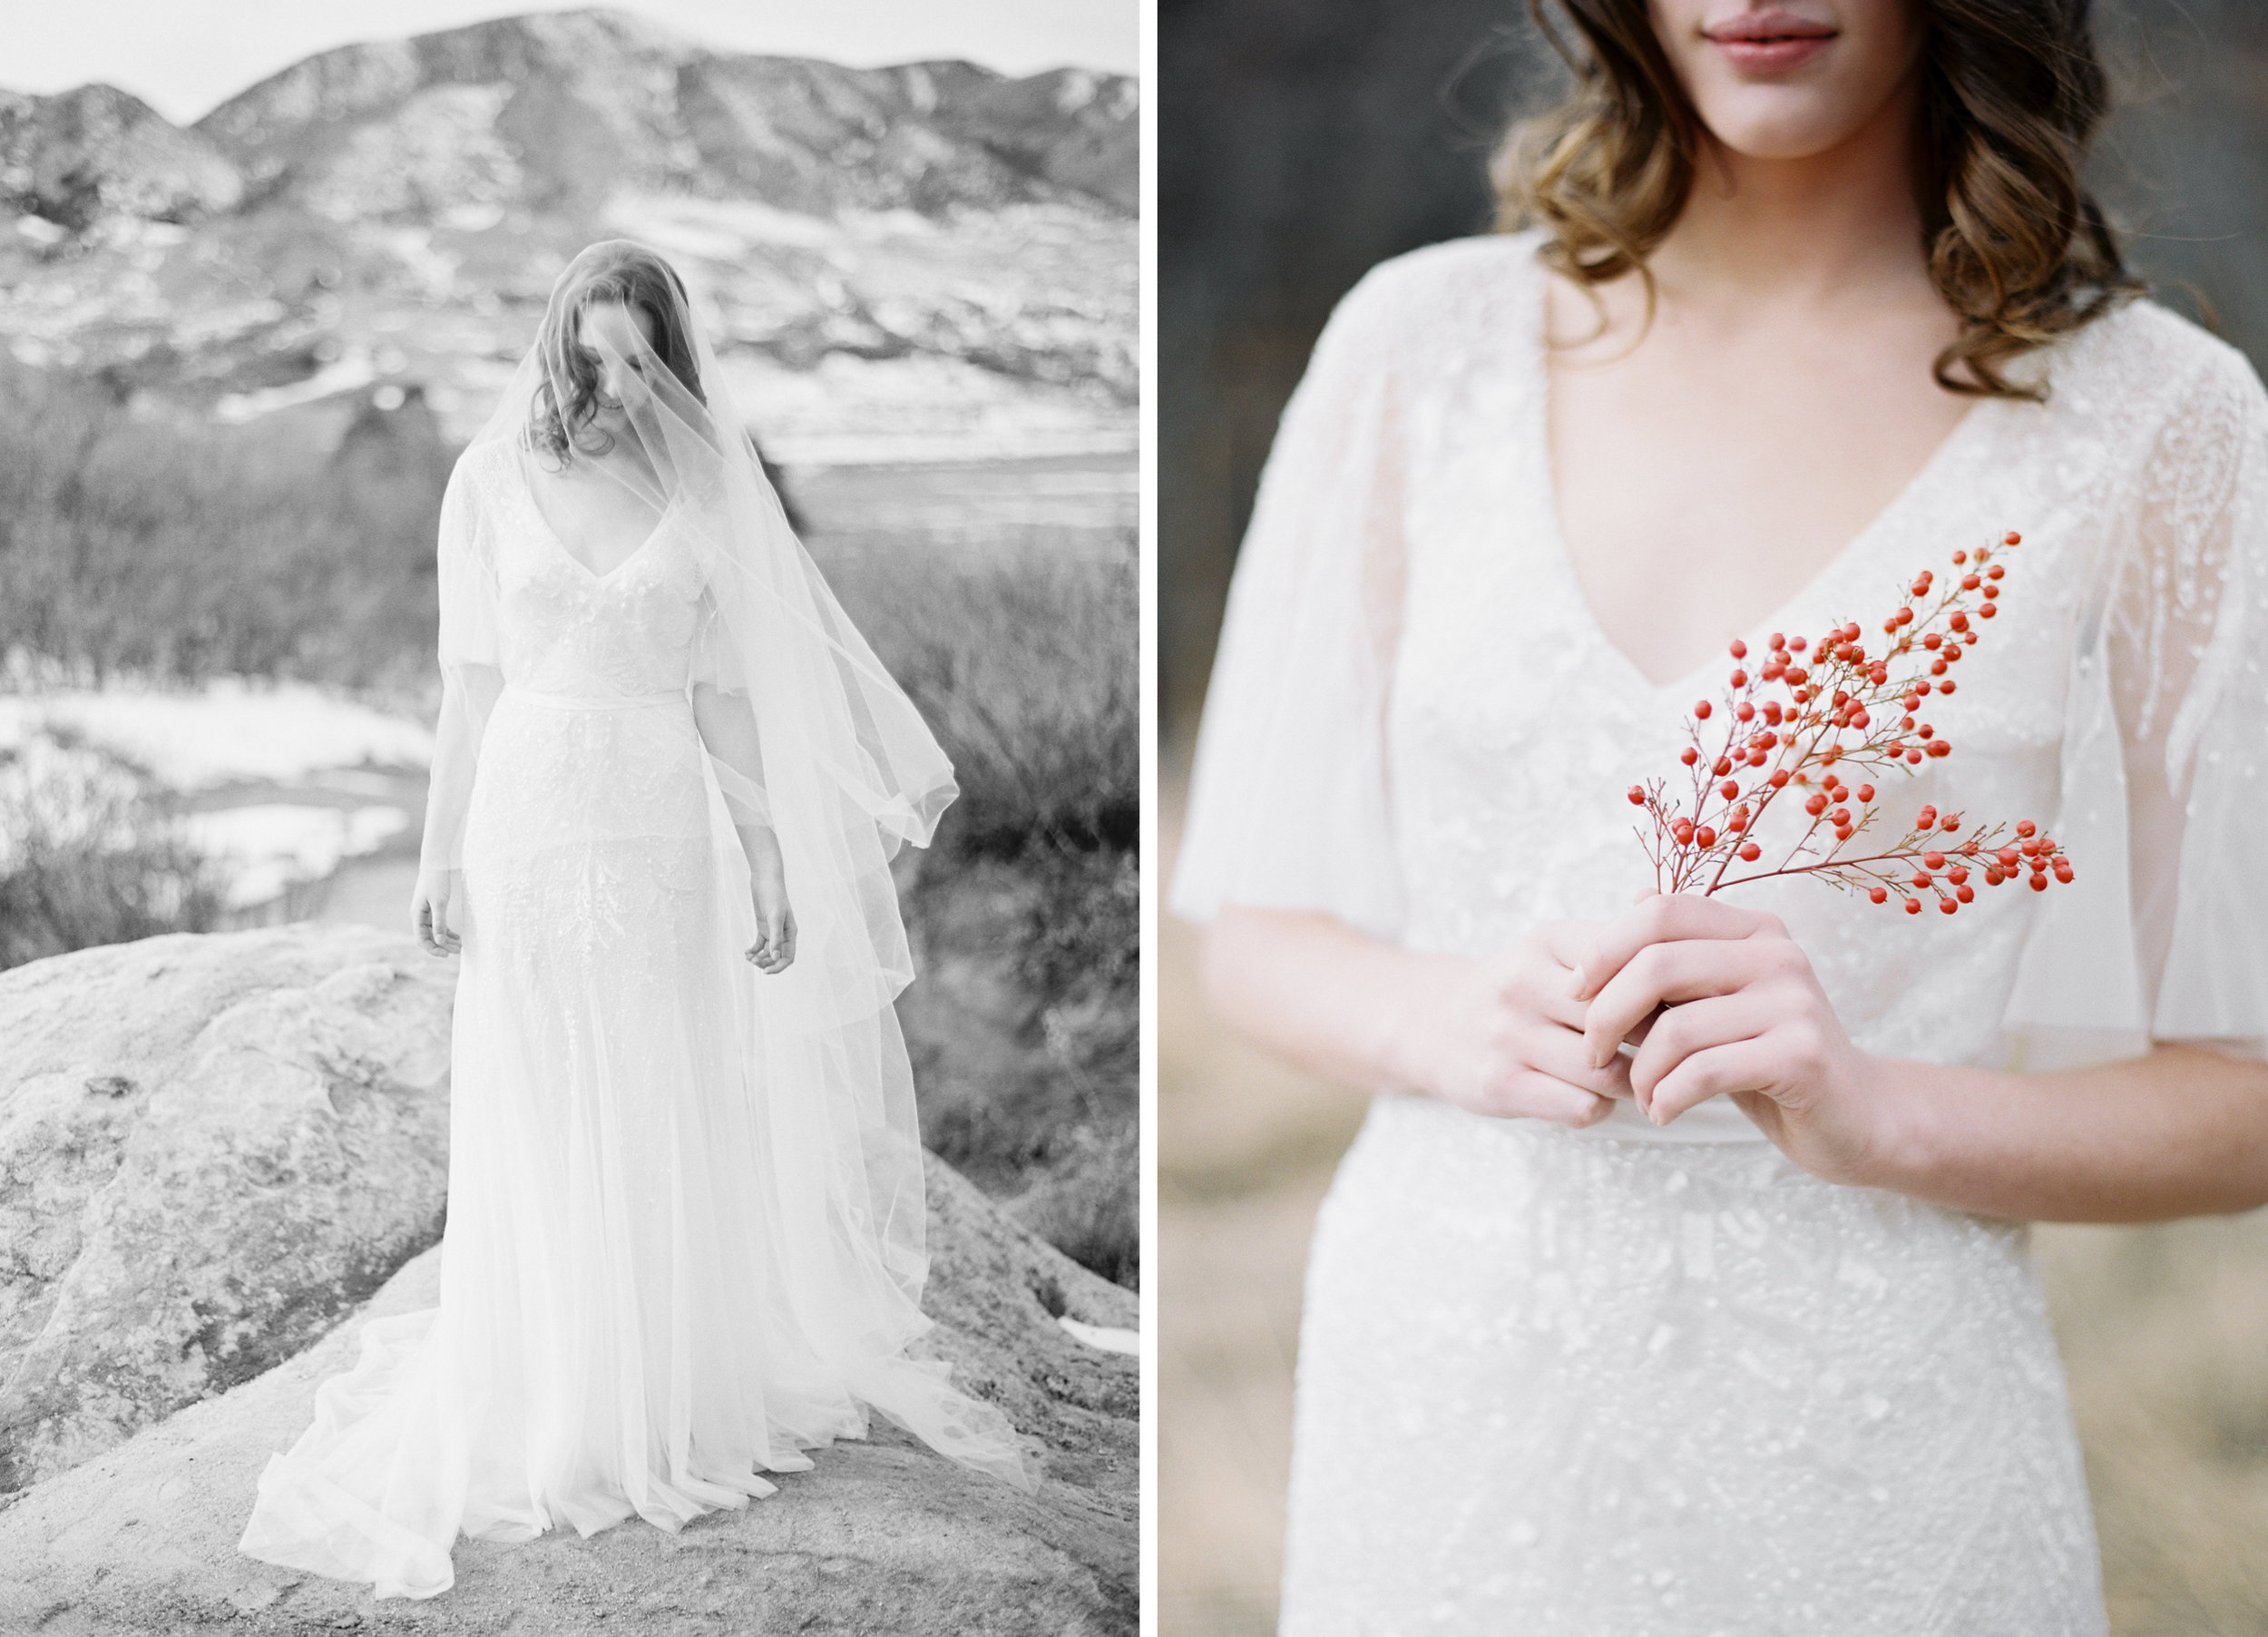 Carrie King Photographer- Something Styled Events-Colorado Winter Wedding2.jpg